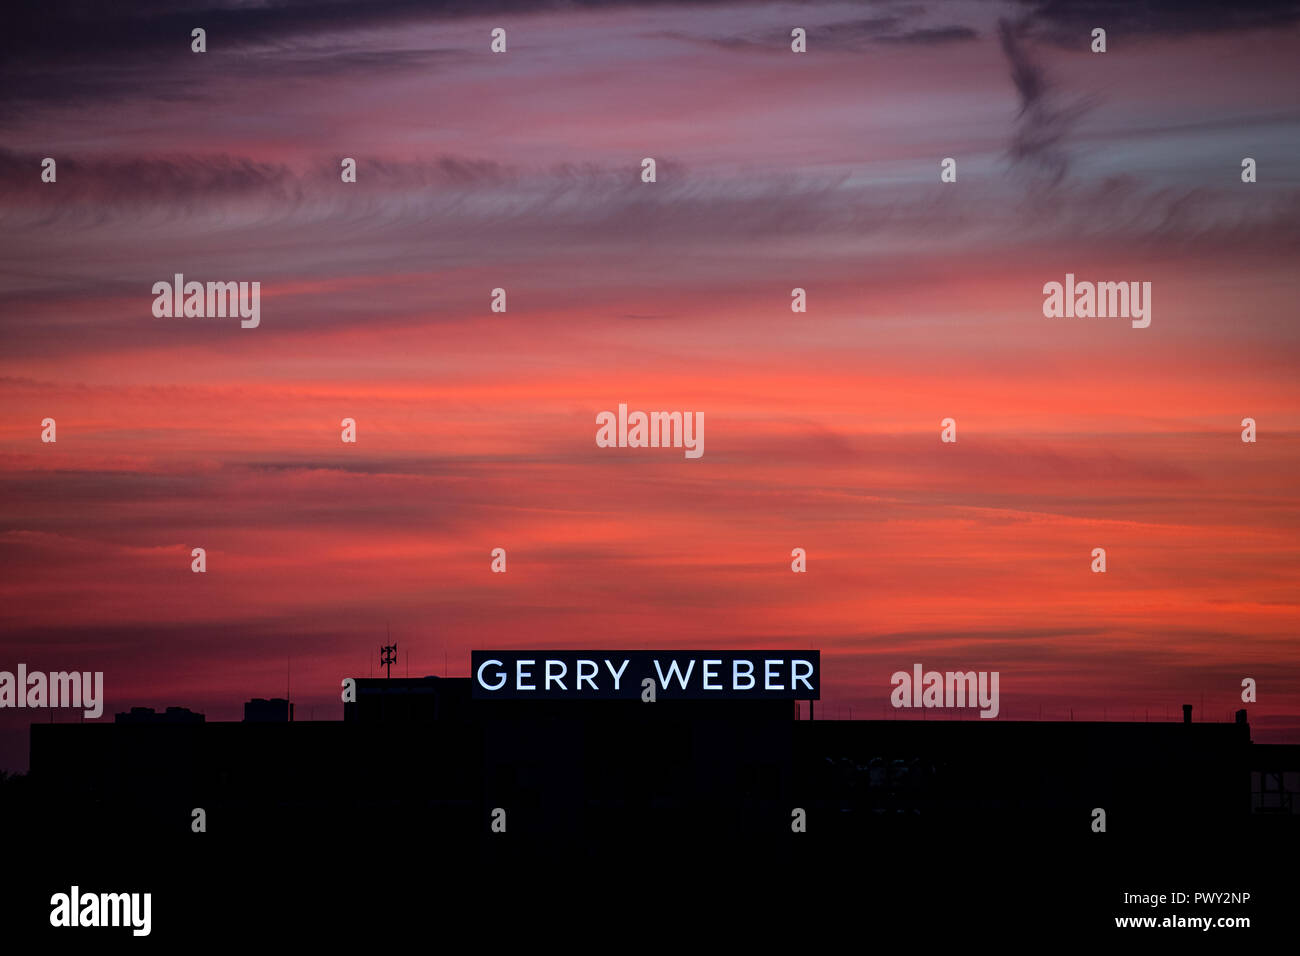 Halle, Germany. 17th Oct, 2018. The emblem of the fashion company Gerry Weber shines in front of the red sky at dusk. The Westphalian textile company continues to struggle with declining sales and expects to be in the red again this year. Credit: Friso Gentsch/dpa/Alamy Live News Stock Photo